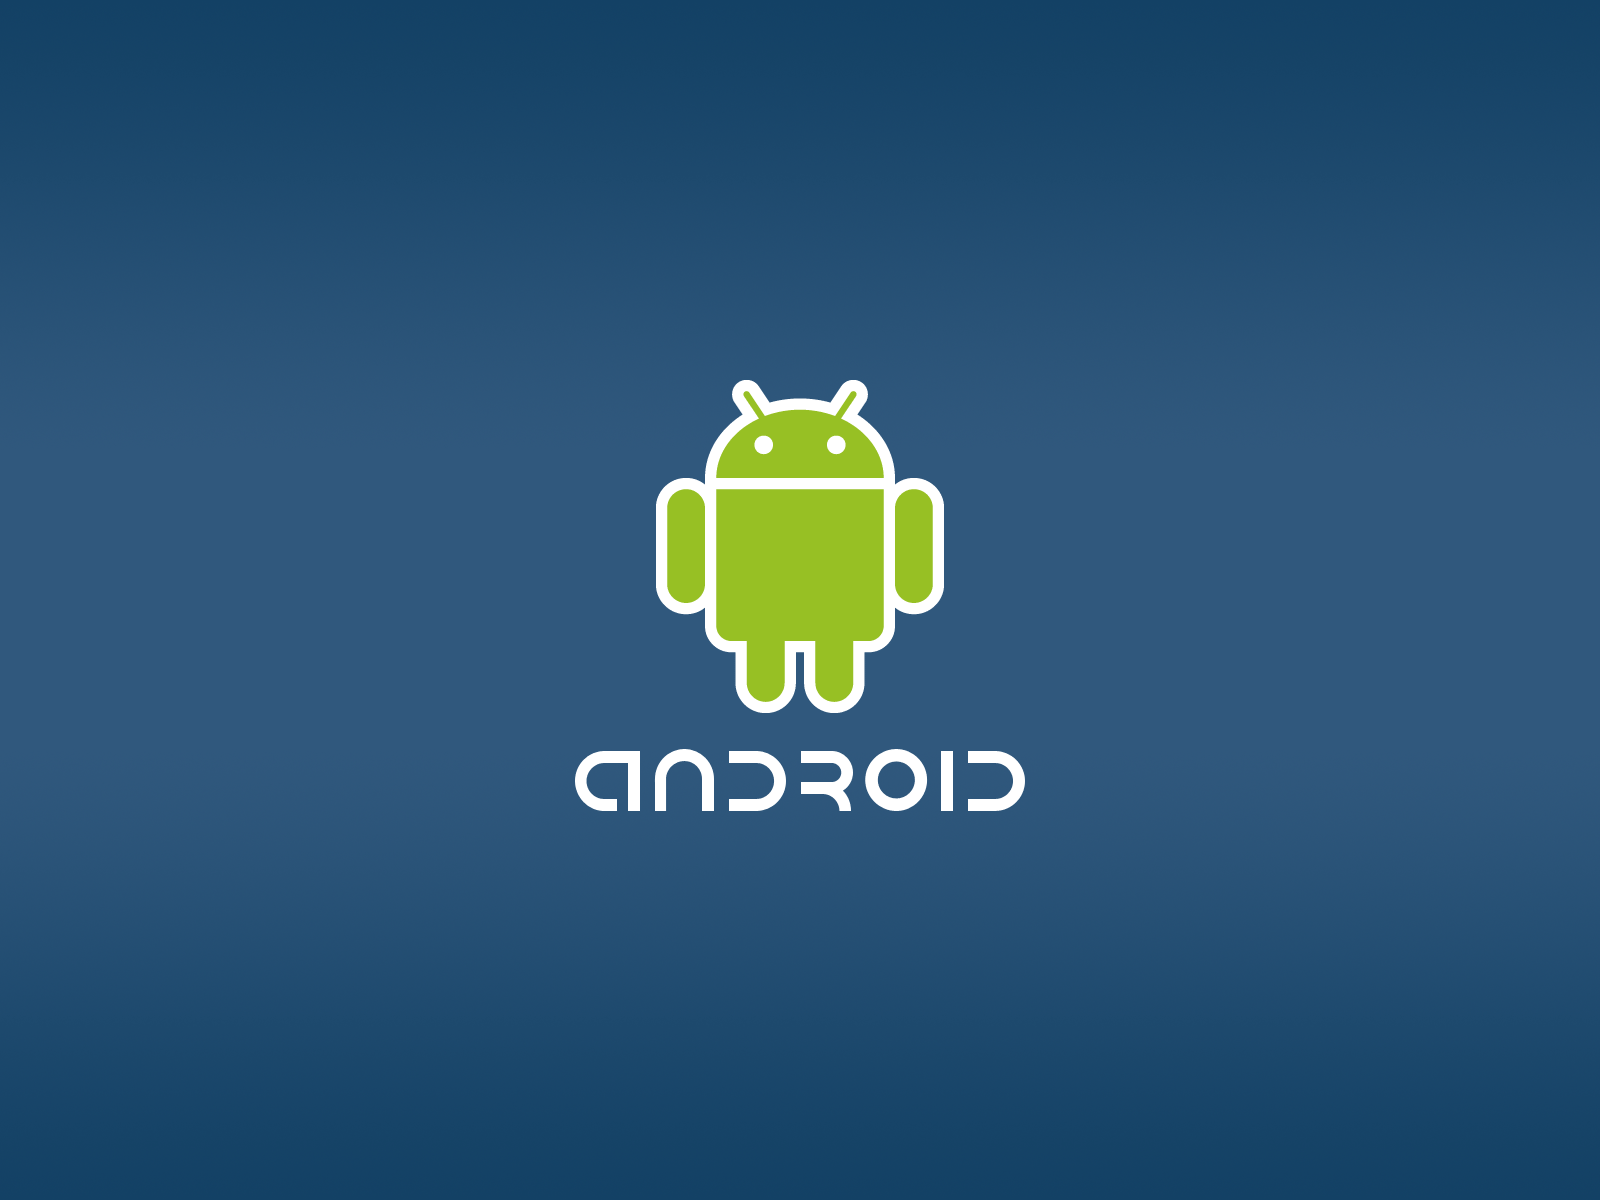 android wallpaper android desktop wallpaperpng 1600x1200